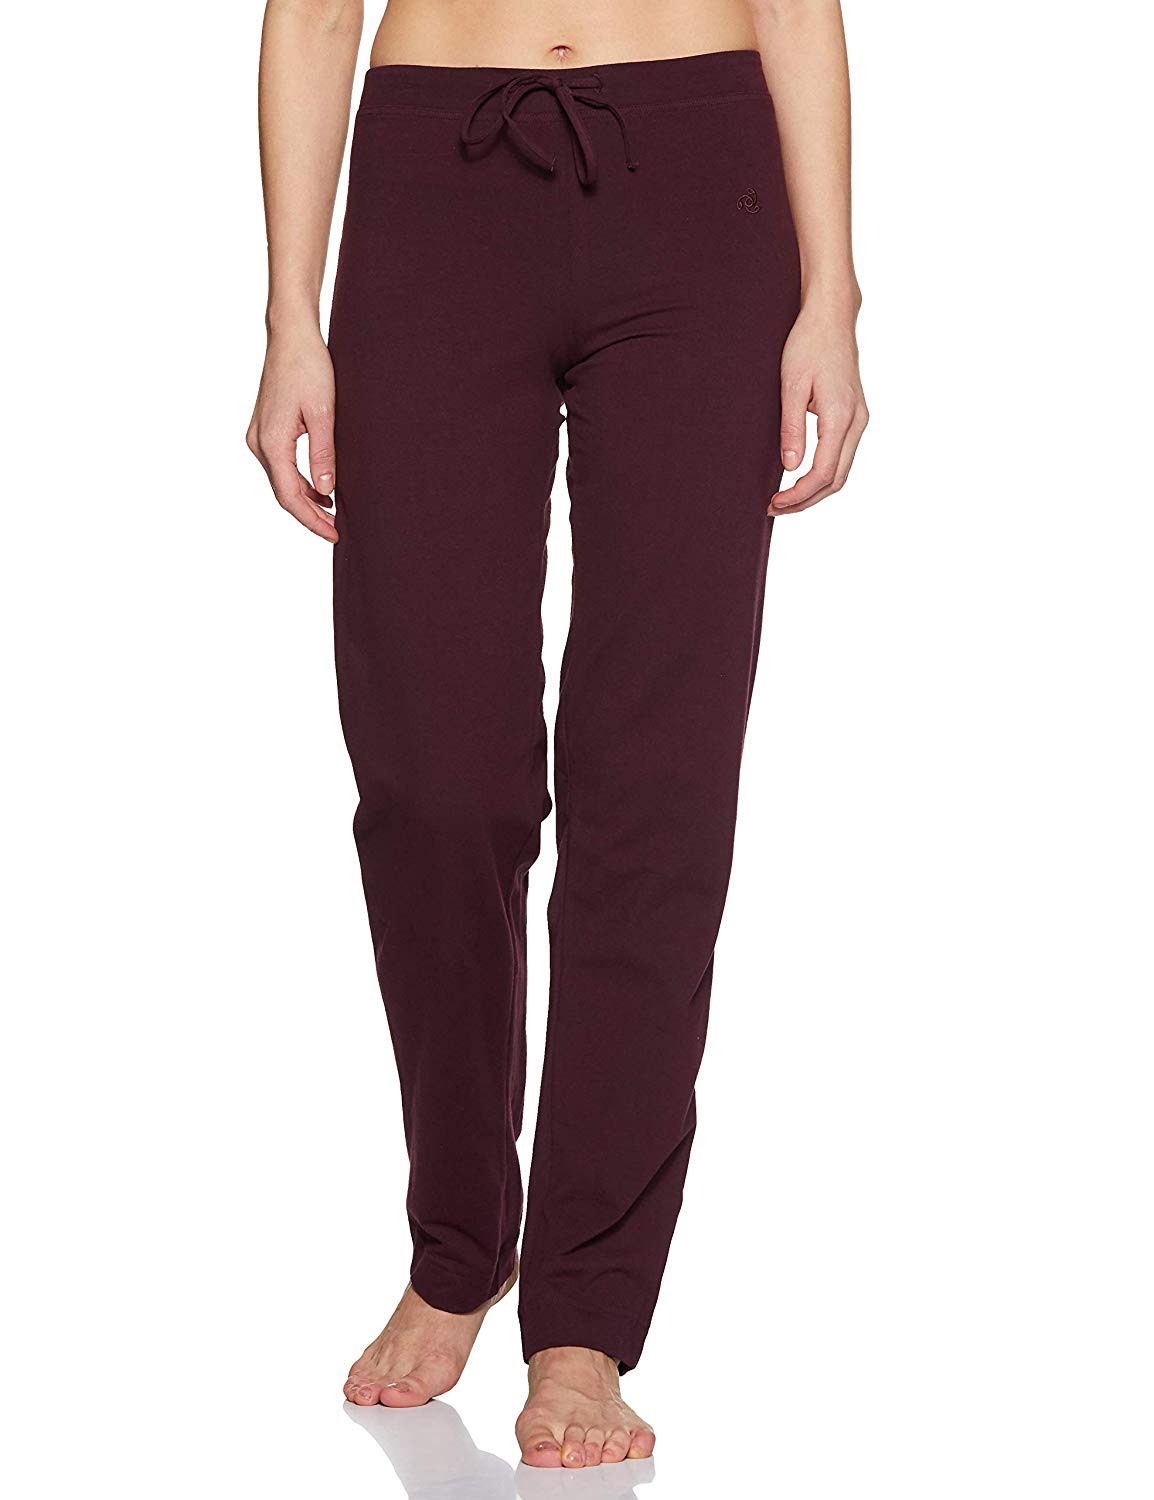 Jockey Women's Lounge Pants